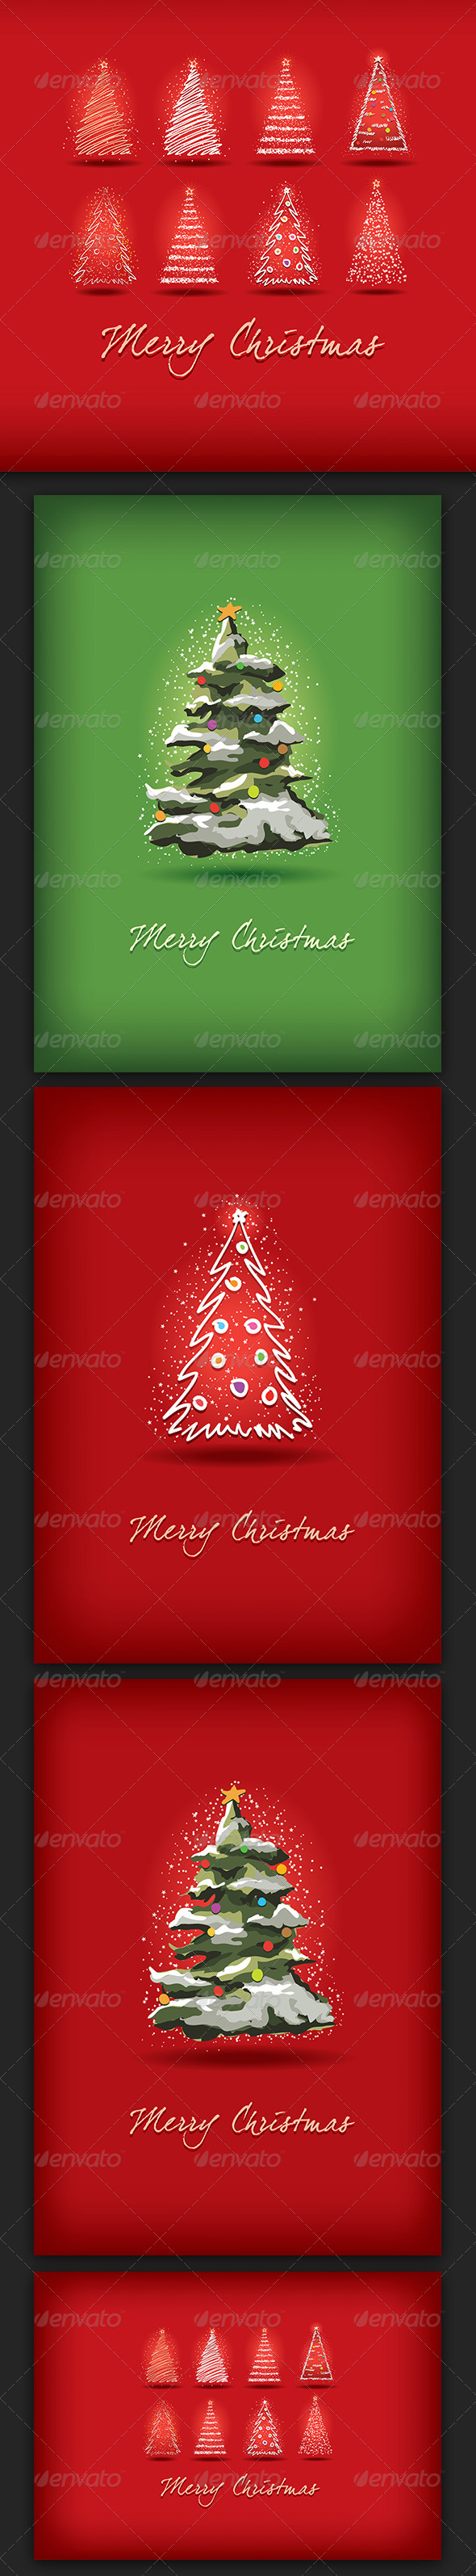 GraphicRiver Merry Christmas Greeting Card Collection 3514083